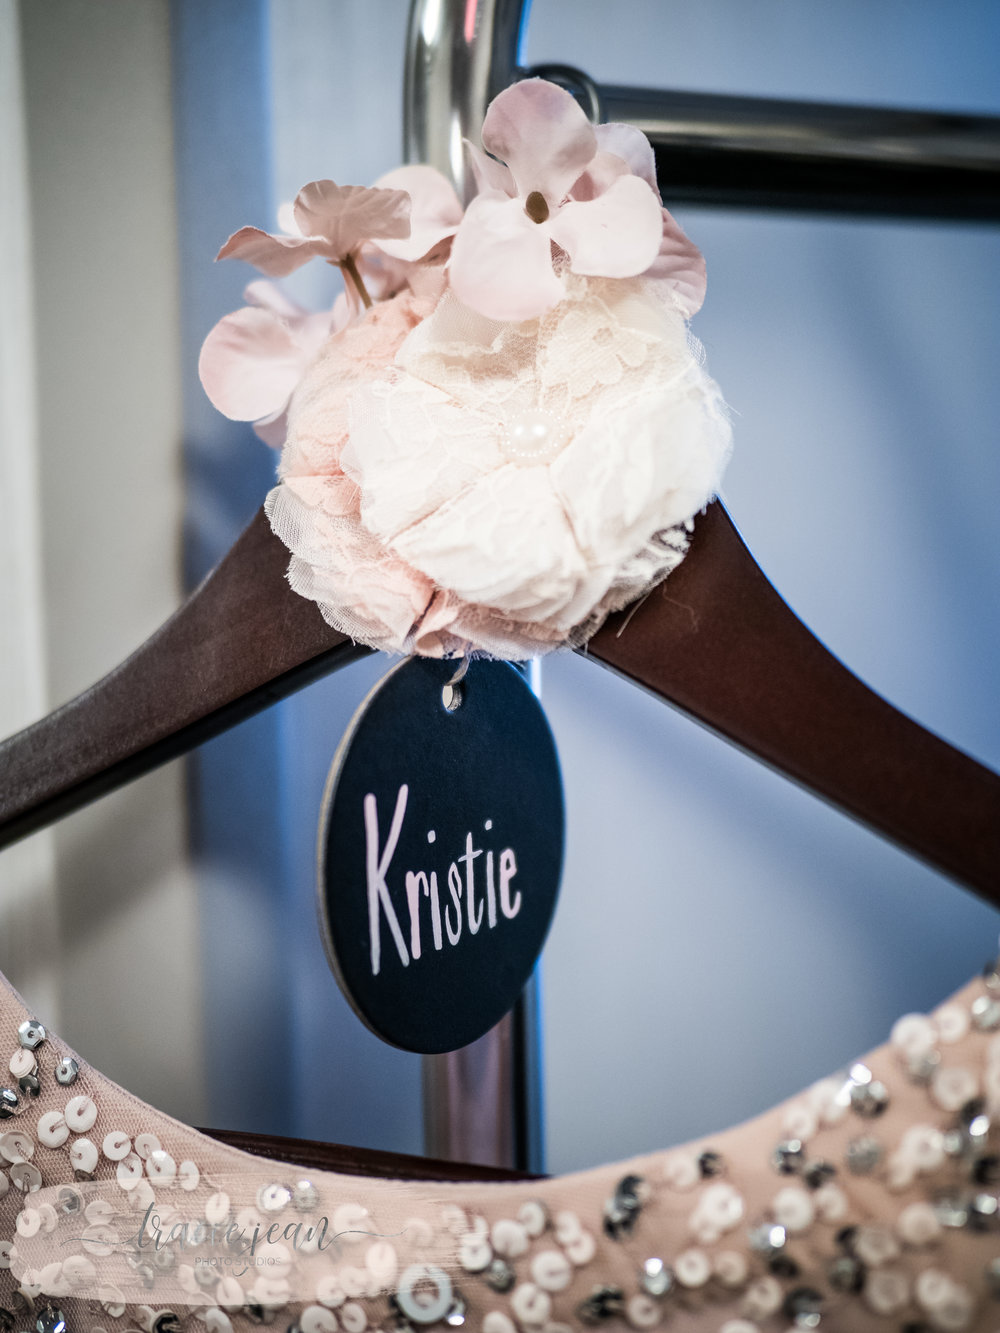 Bridesmaids Names on Each Hanger